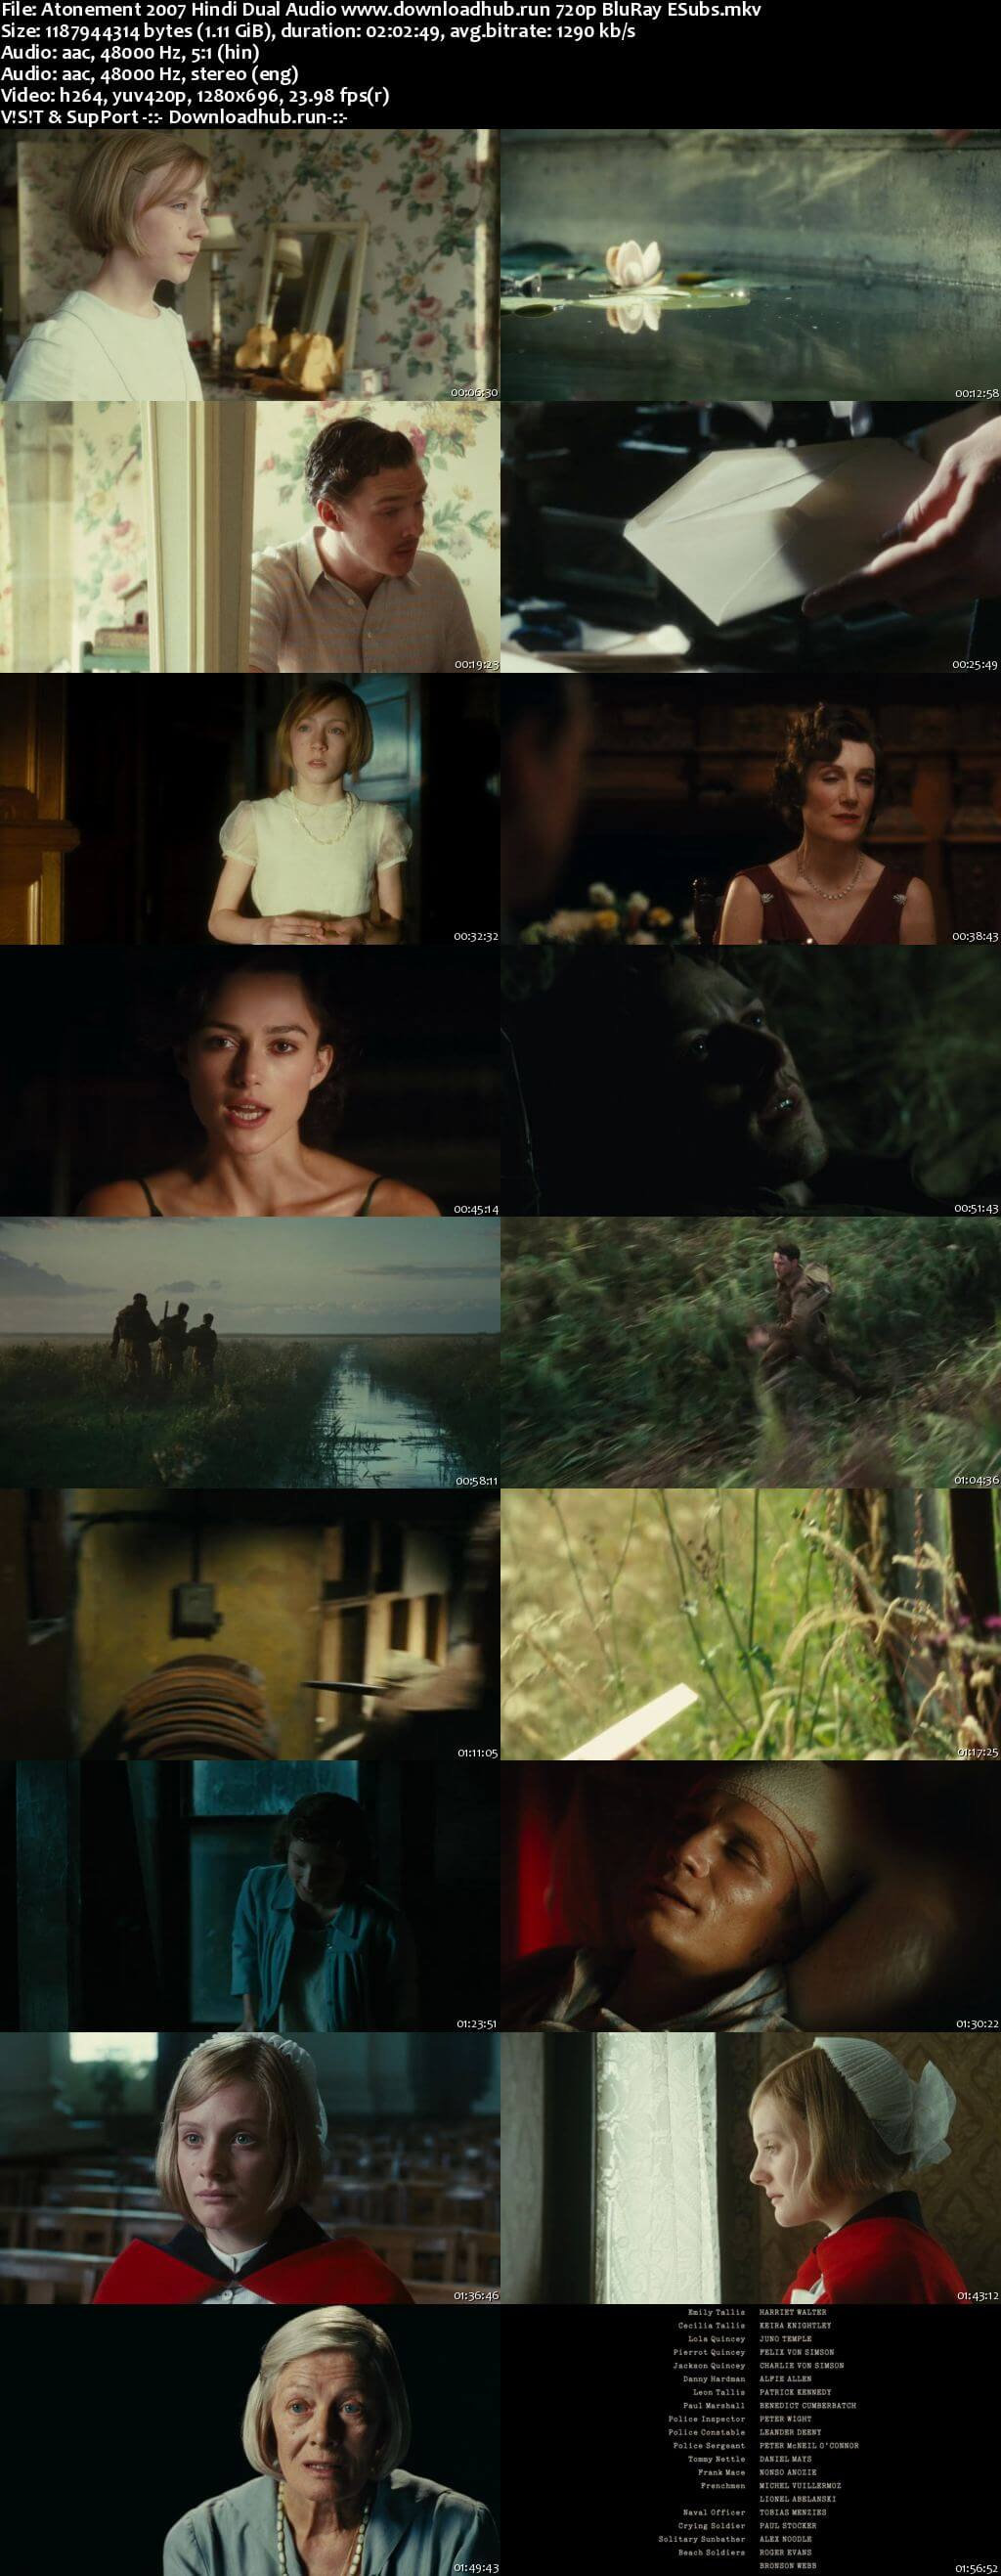 Atonement 2007 Hindi Dual Audio 720p BluRay ESubs